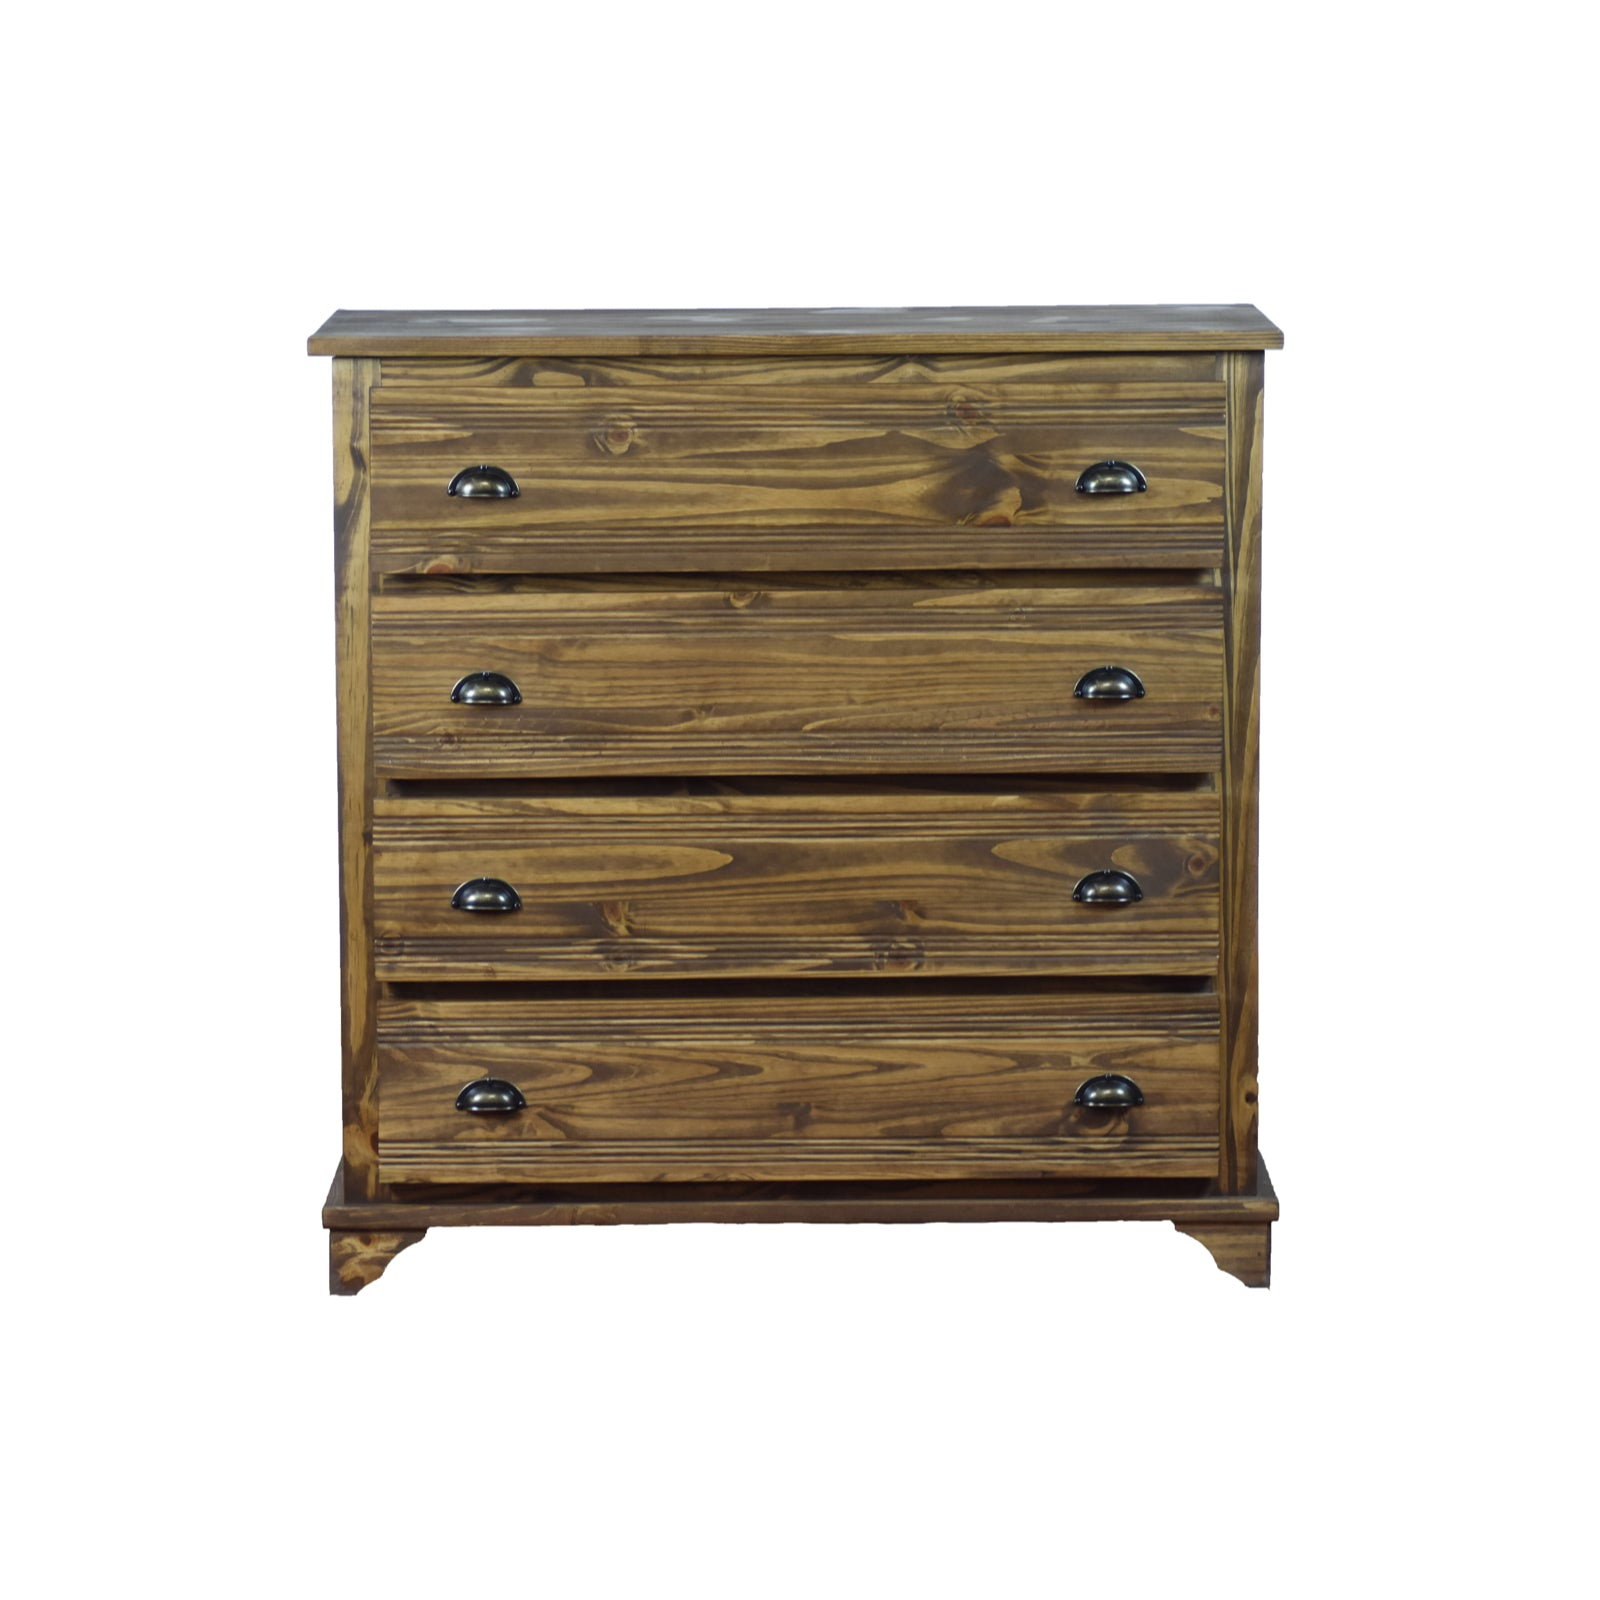 reclaimed wood dresser, dresser, home furniture, home stores furniture,